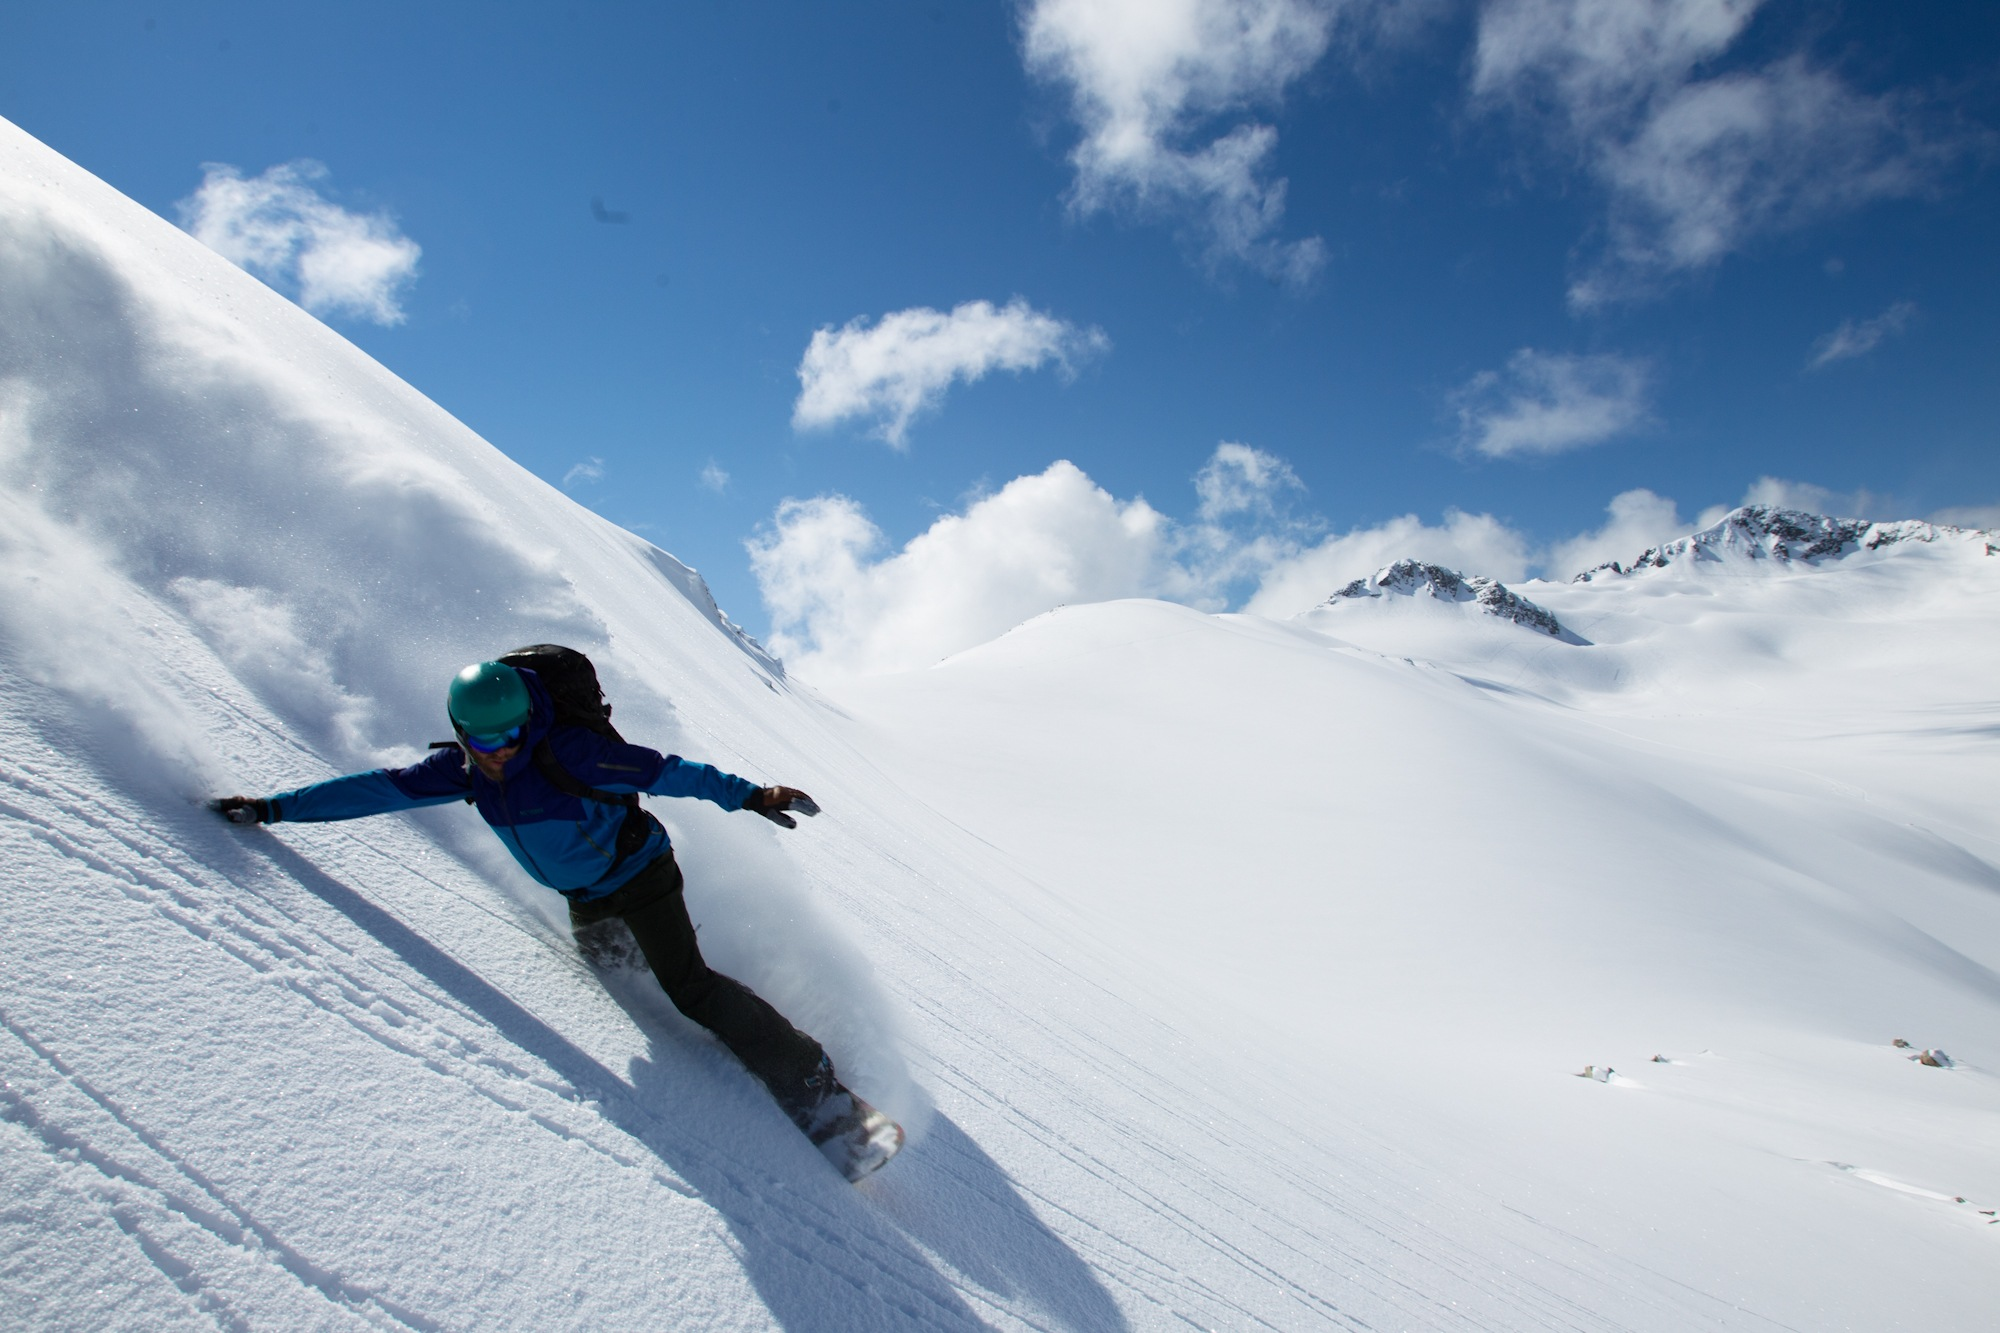 Where has all the love gone in snowboarding? Photo by: Vince Shuley